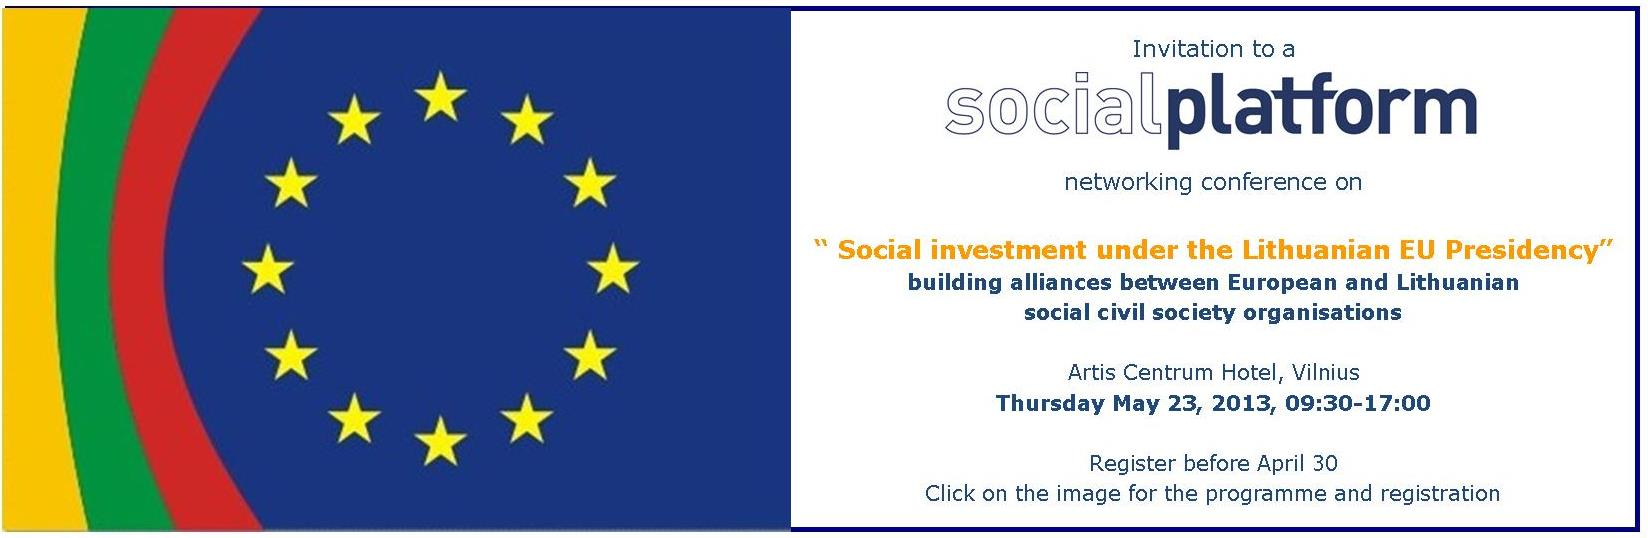 for social justice and participatory democracy in europe consisting ...